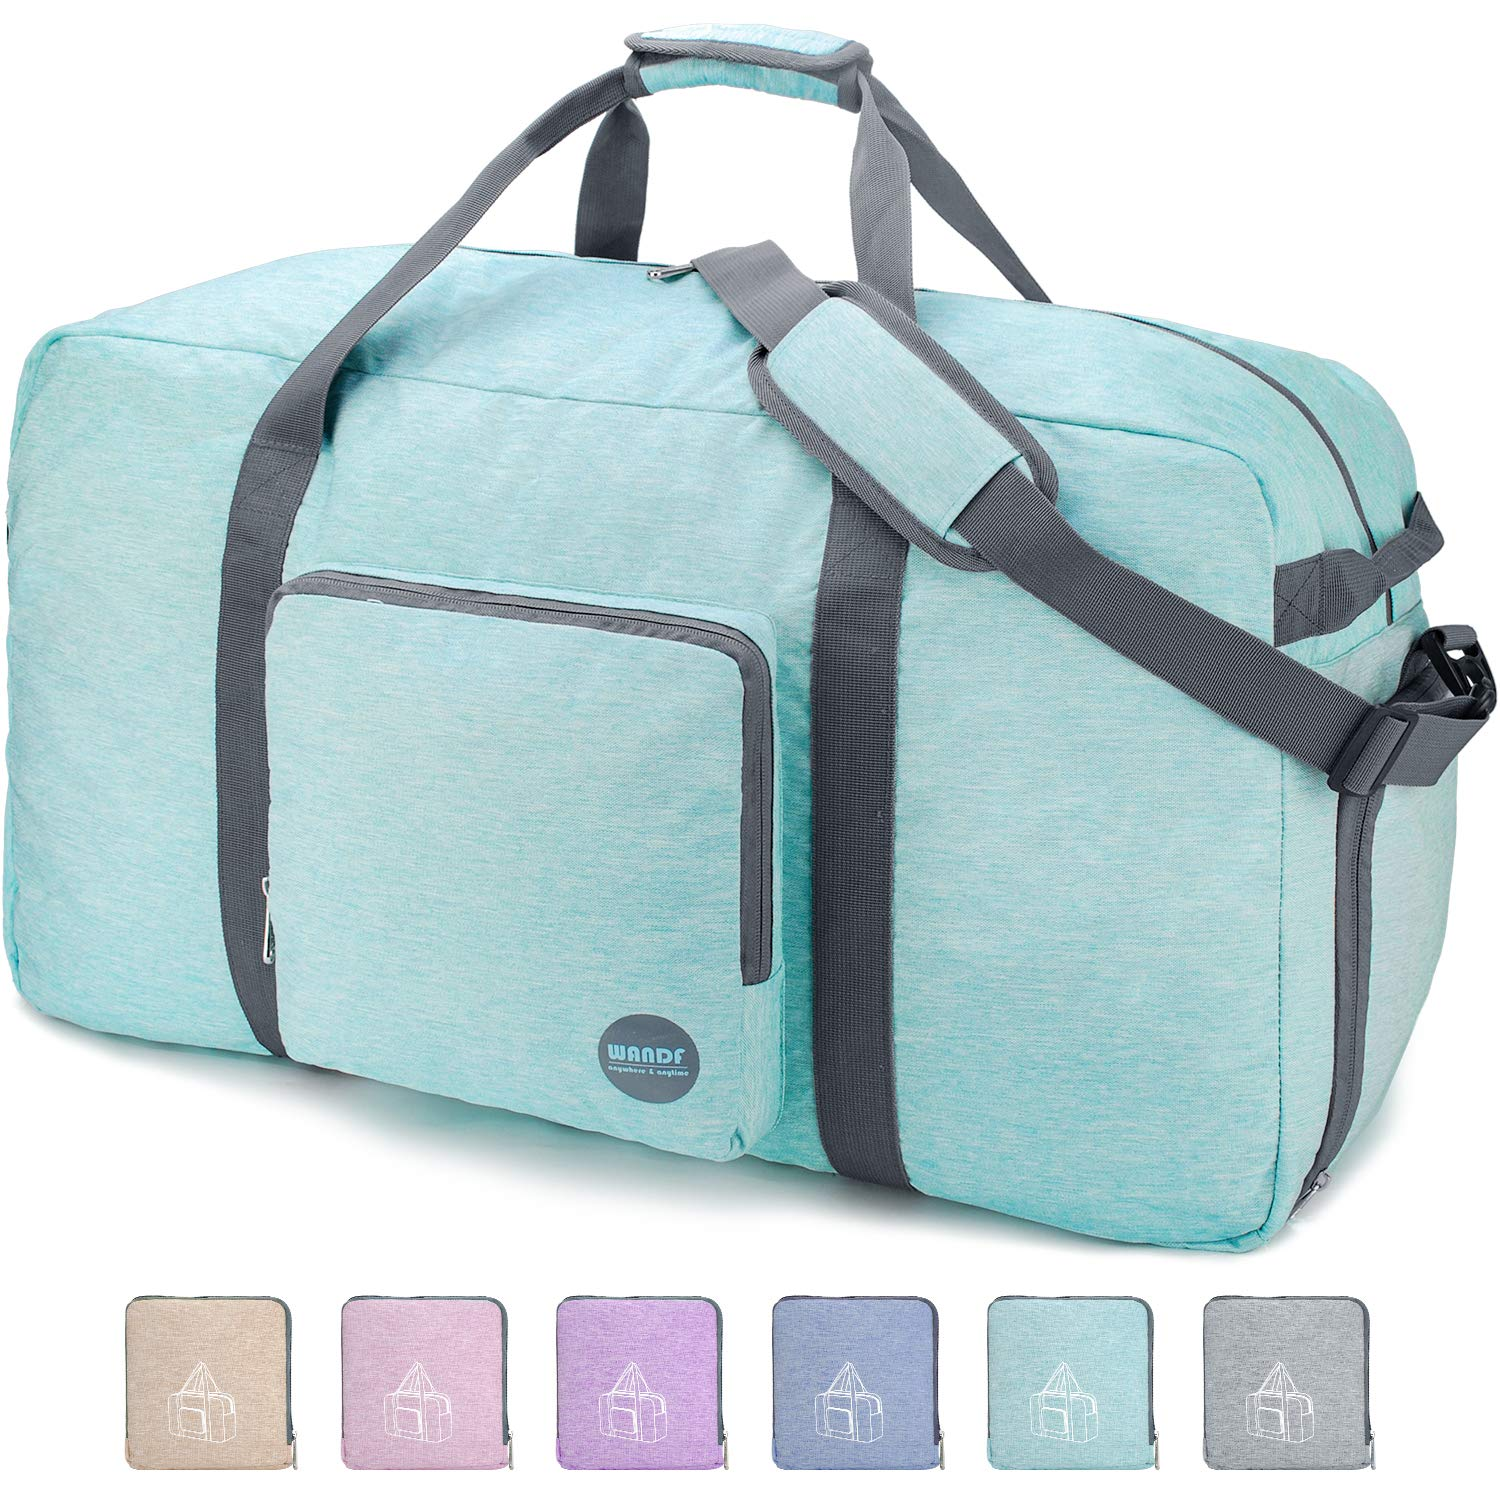 36'' Foldable Duffle Bag 120L for Travel Gym Sports Packable Lightweight Luggage Duffel Water-resistant By WANDF (Light Mint Green, 36 inches (120 Liter)) by WANDF